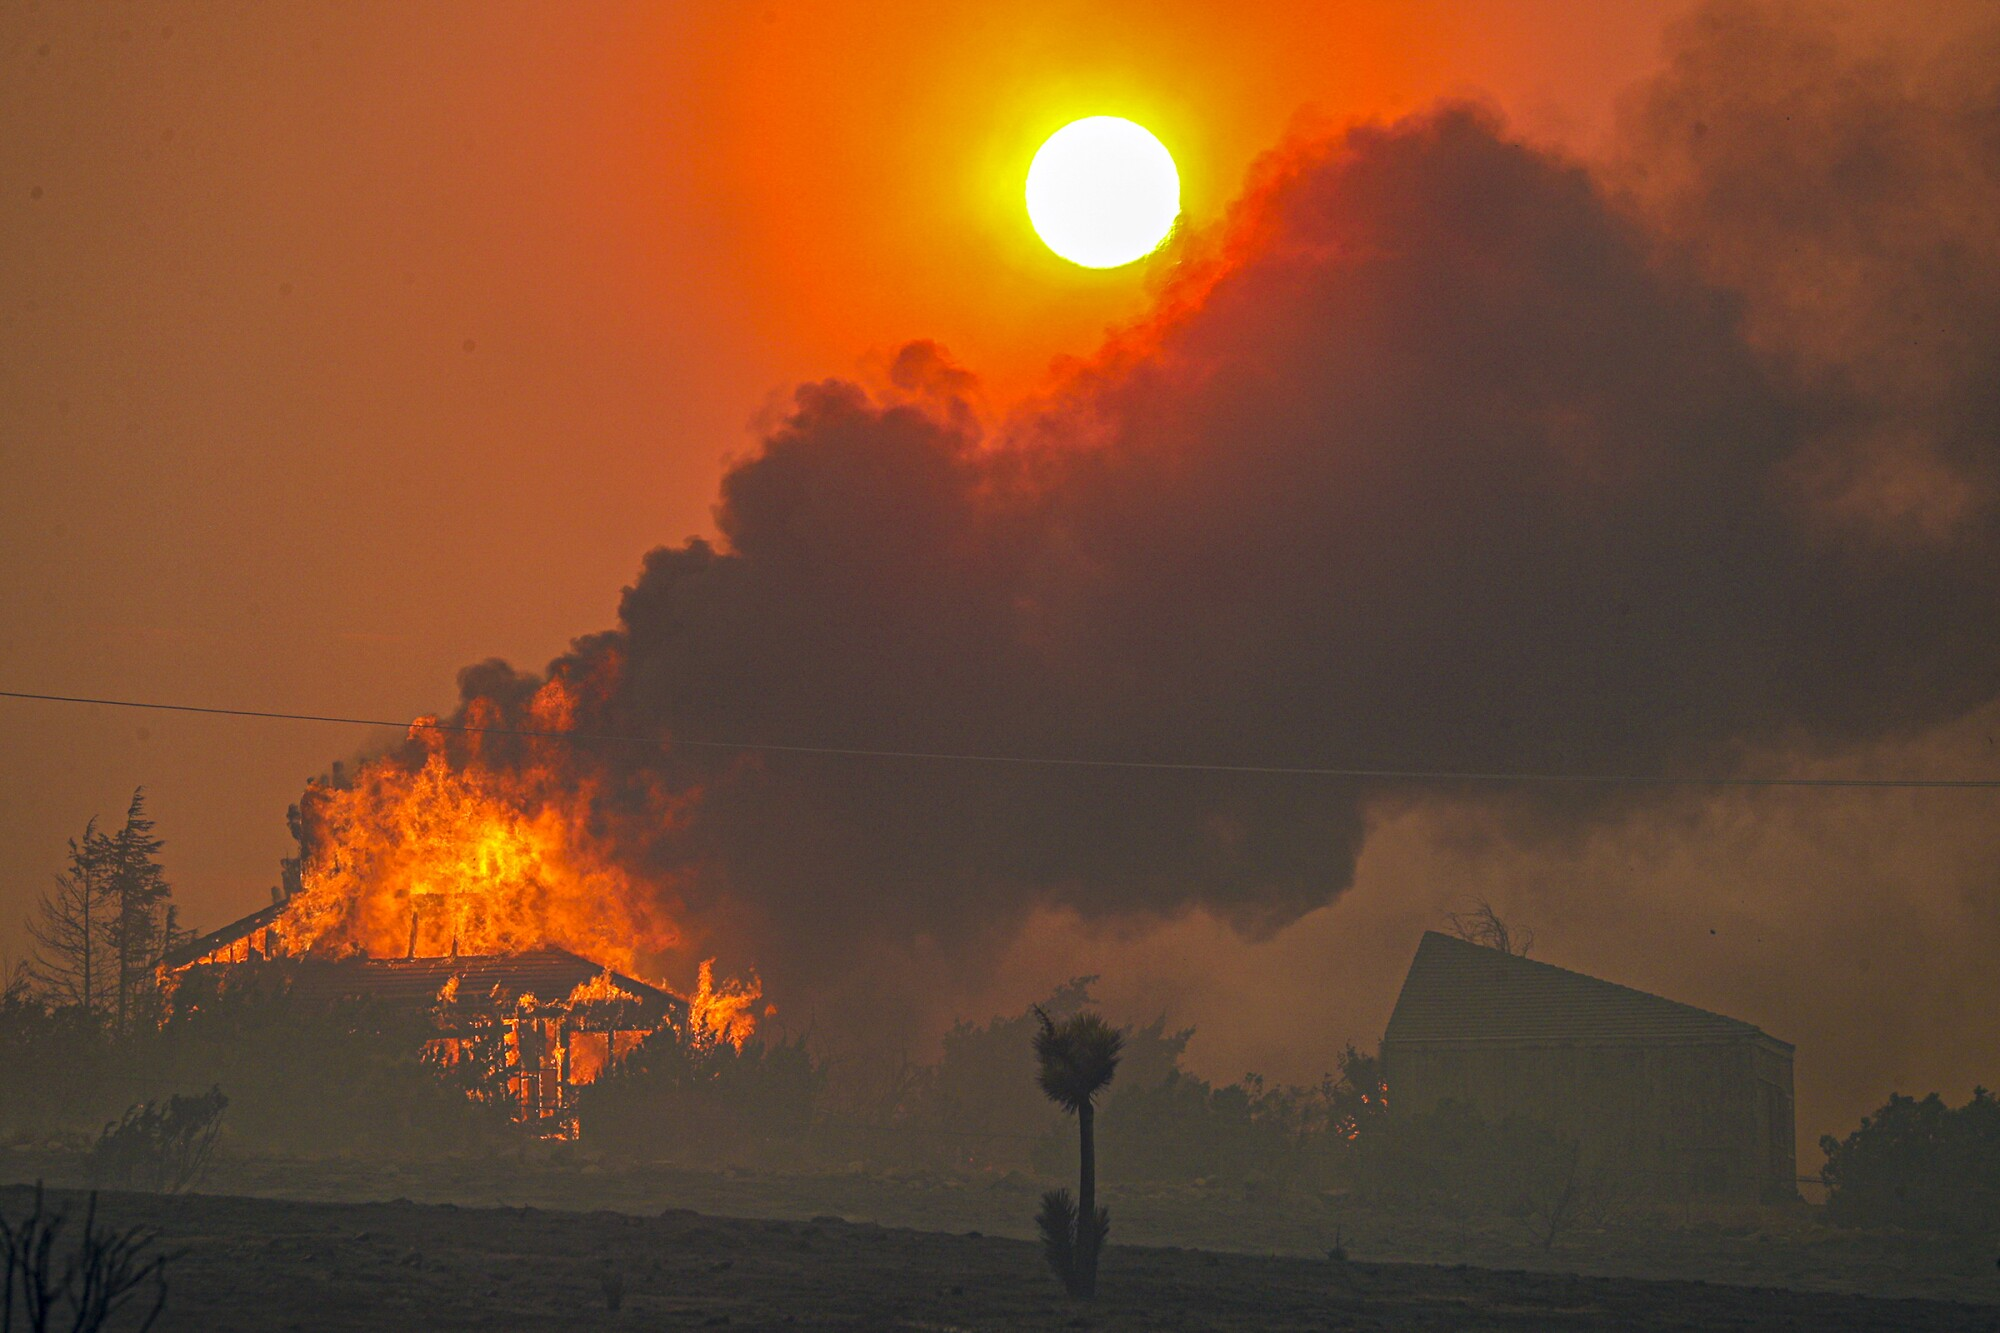 The setting sun is obscured by heavy smoke from the Bobcat fire as seen from Littlerock, Calif., on Friday.